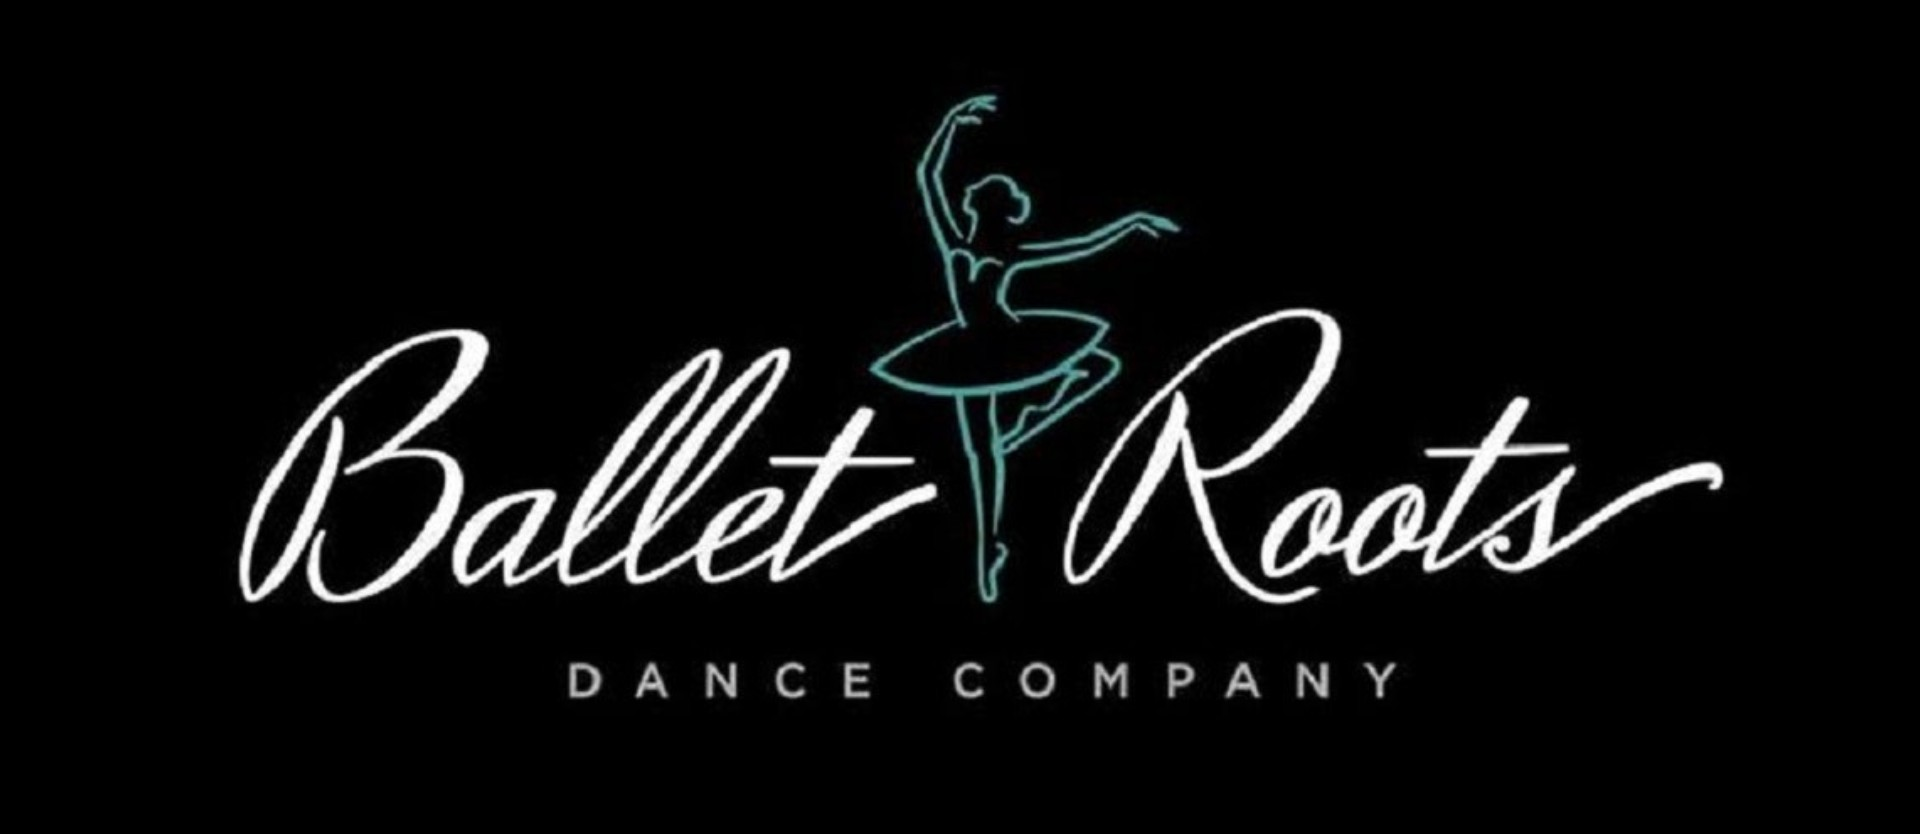 Ballet Roots Dance Company - Debut Performance